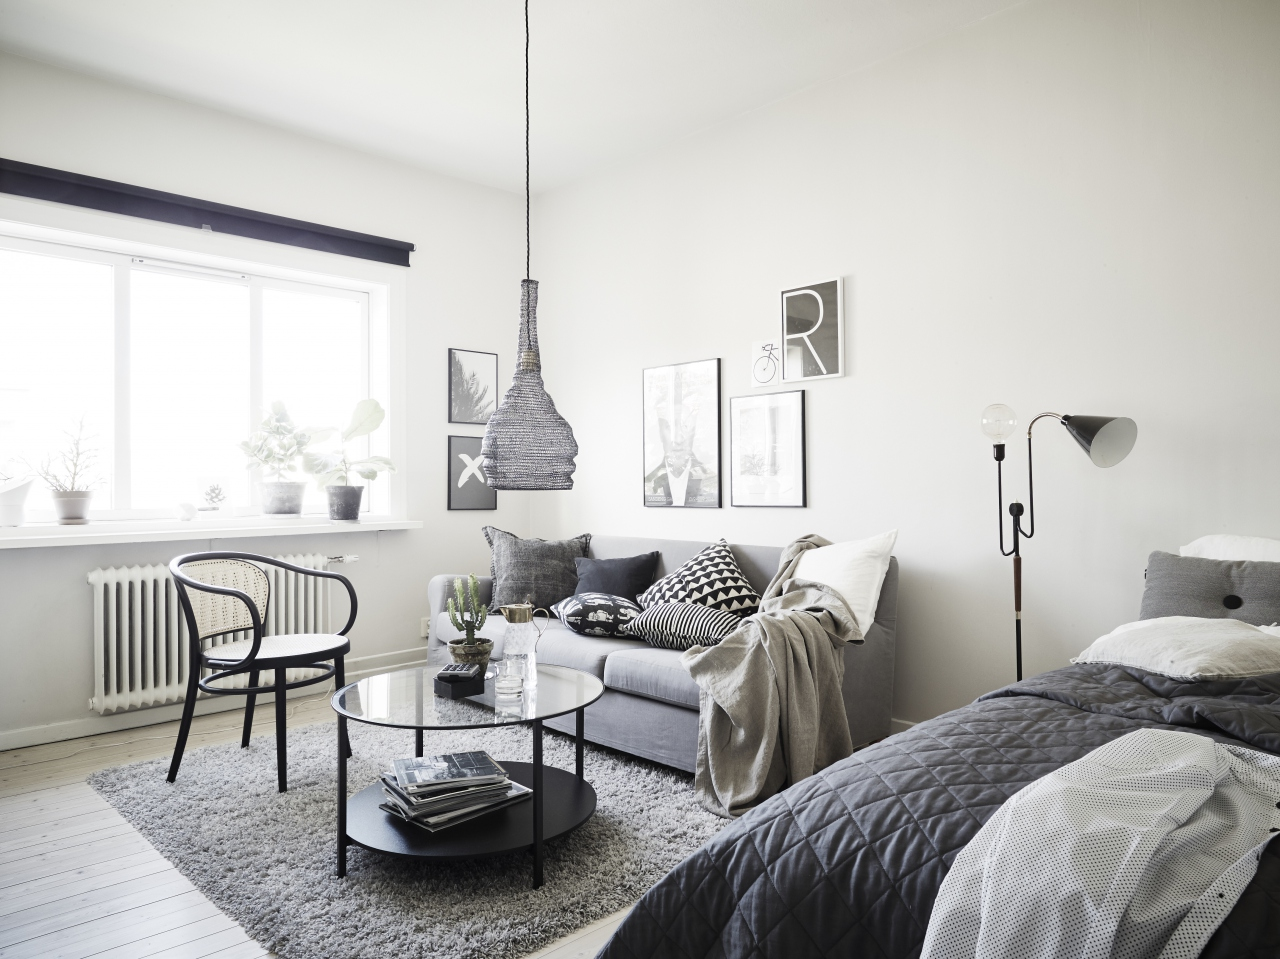 Beautiful Home In Grey Coco Lapine Designcoco Lapine Design